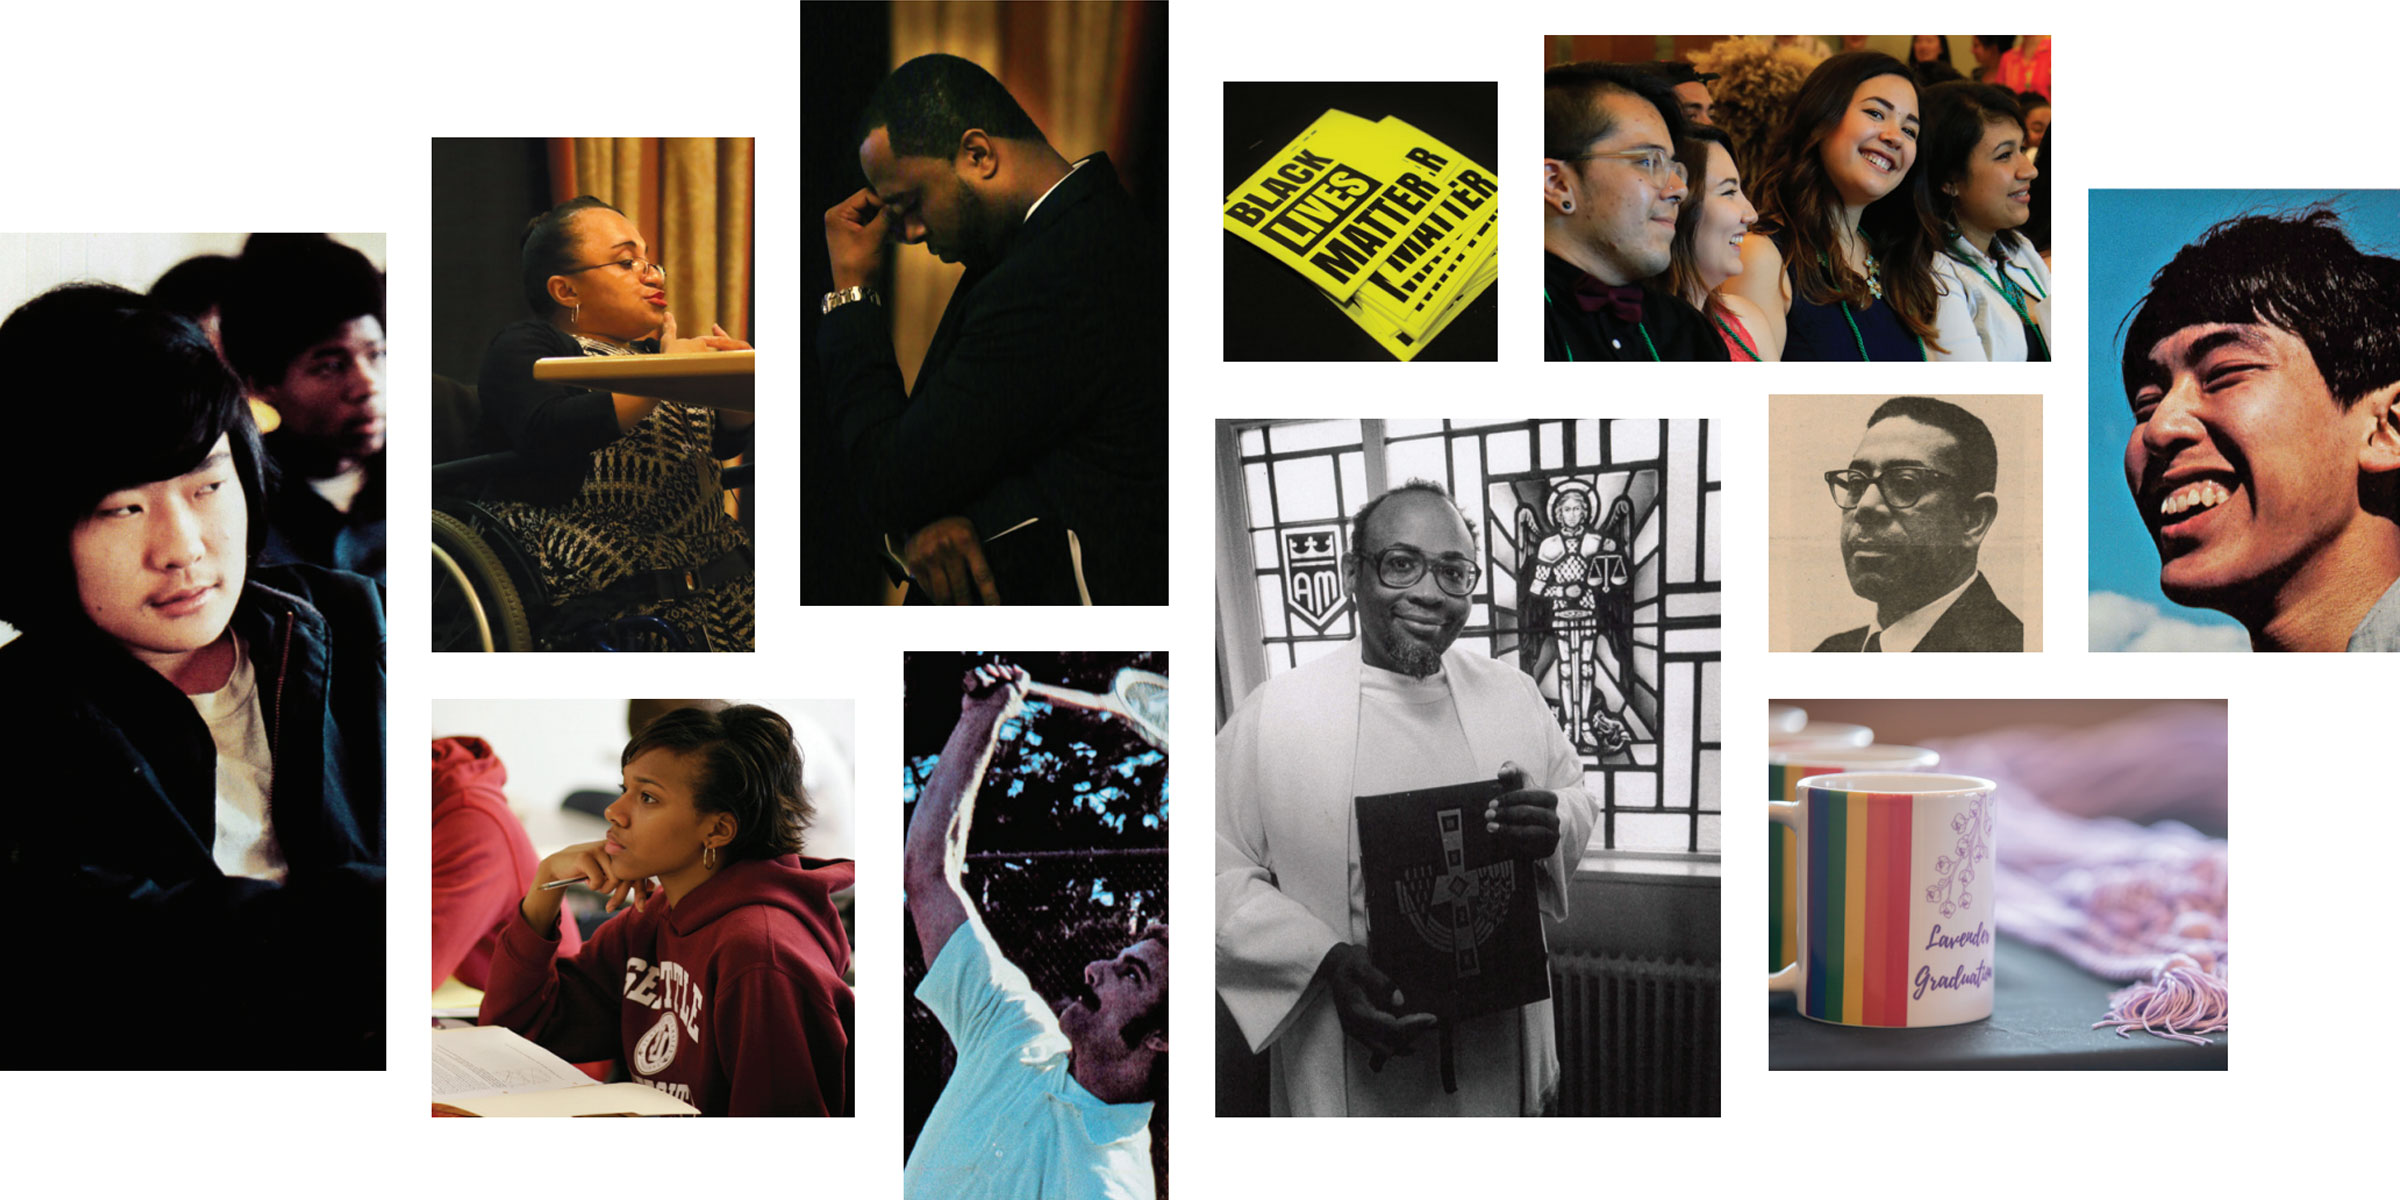 Photo collage representing some key people and moments in OMA's 50 years